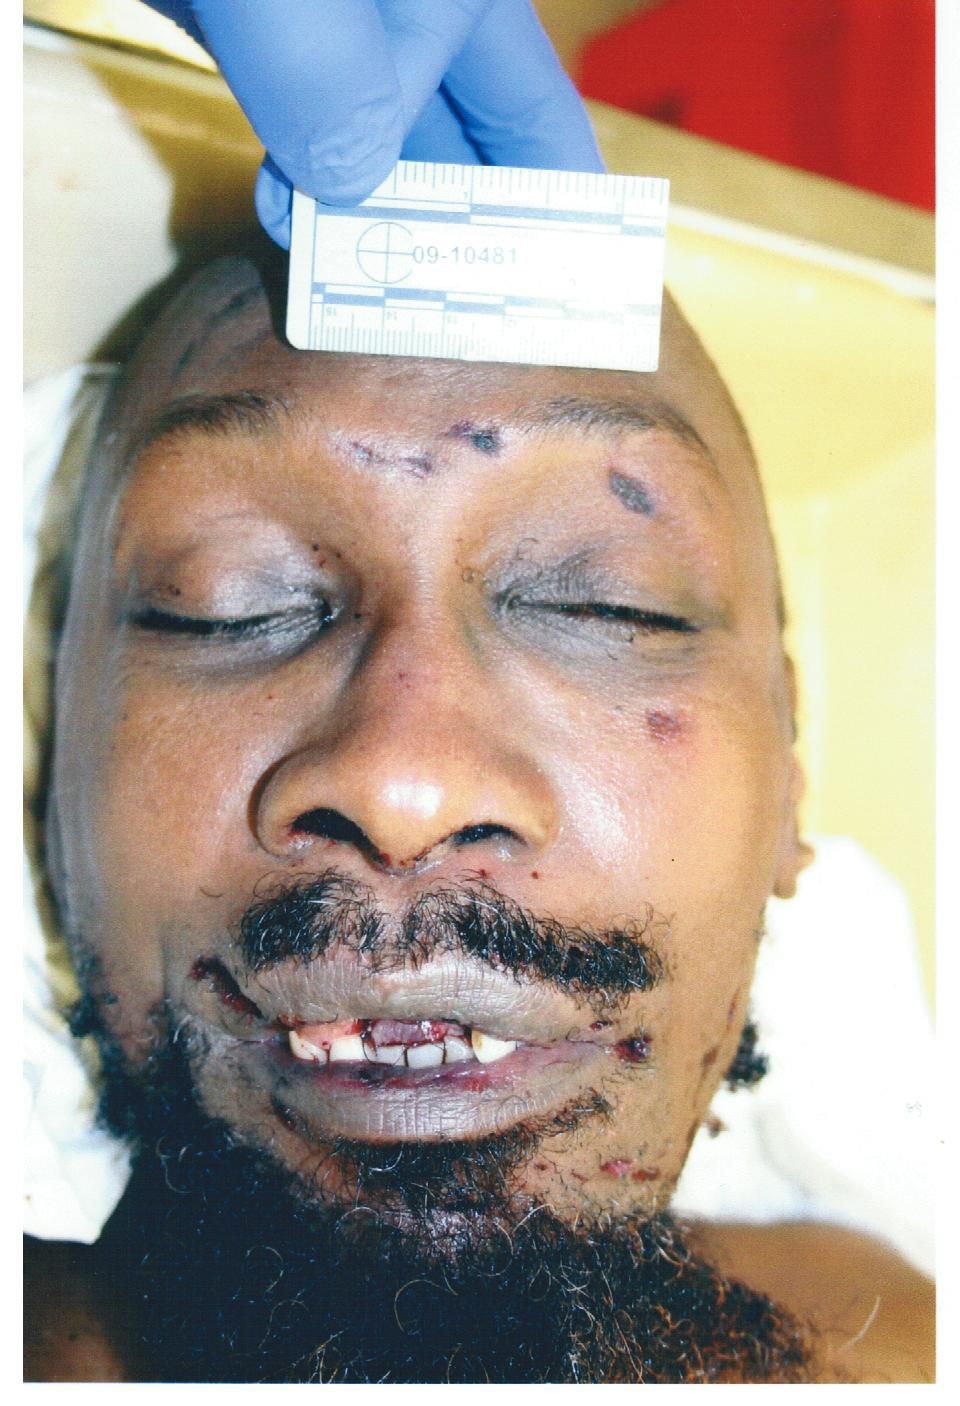 Autopsy Photos Of Imam Luqman Ameen Abdullah likewise Lowell Observatory Wants Asteroid Named After Trayvon Martin moreover 110793 also Diaporama 4023 Photo 752937 Retour Affaire Rey Maupin furthermore Dsr Les Mureaux Simposent Face Aux Gobelins Et Accedent A La Dh 14928. on amadou diallo